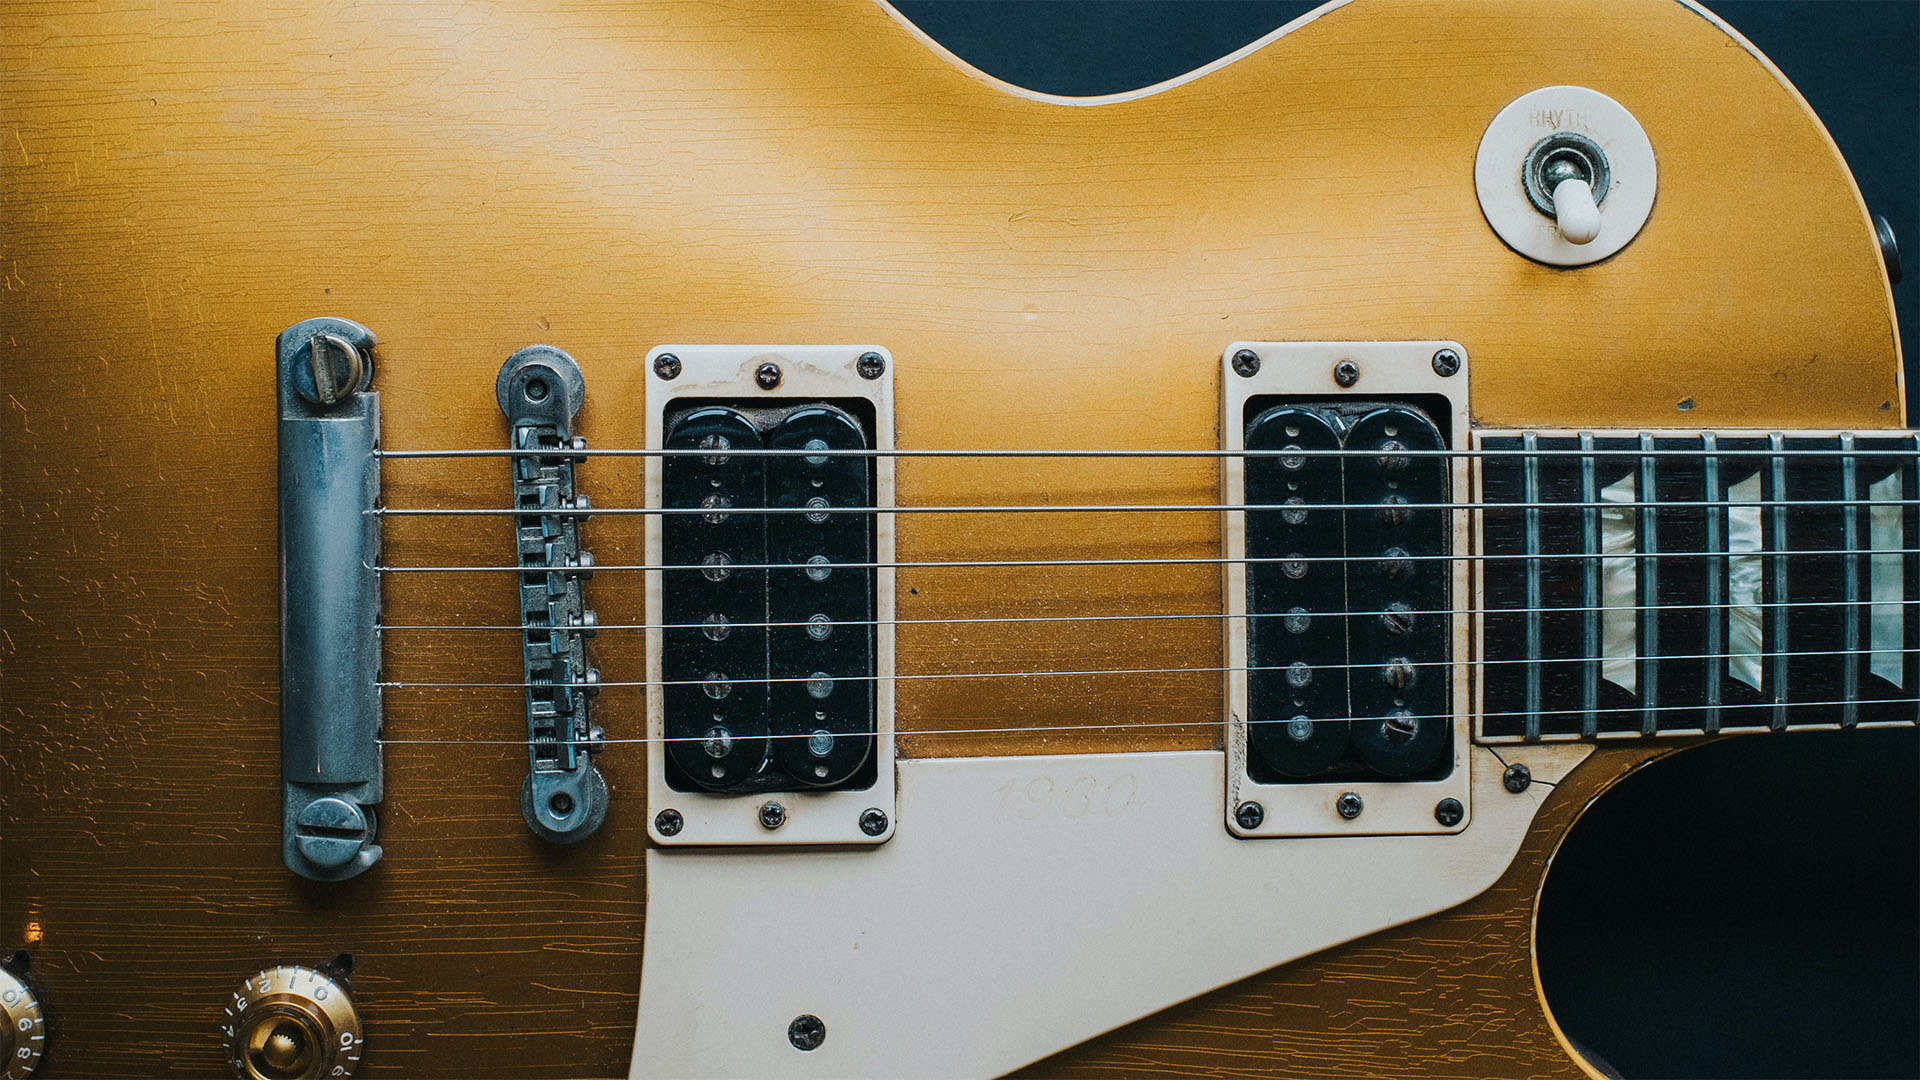 Close up detailed view of an electric guitar